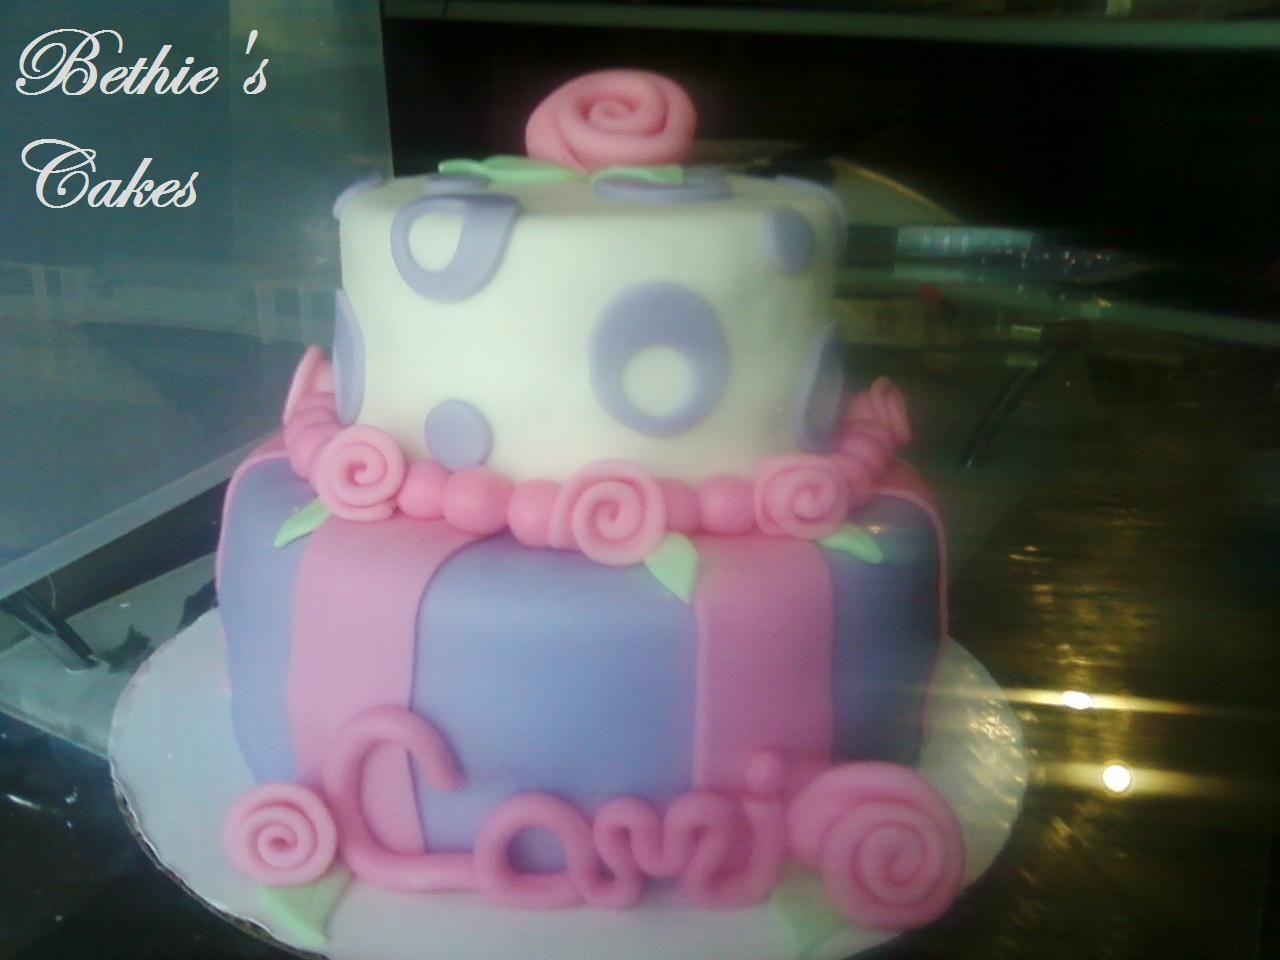 My Friend Amanda's lil girls bday cake. (6th cake) This one is my favorite so far :)